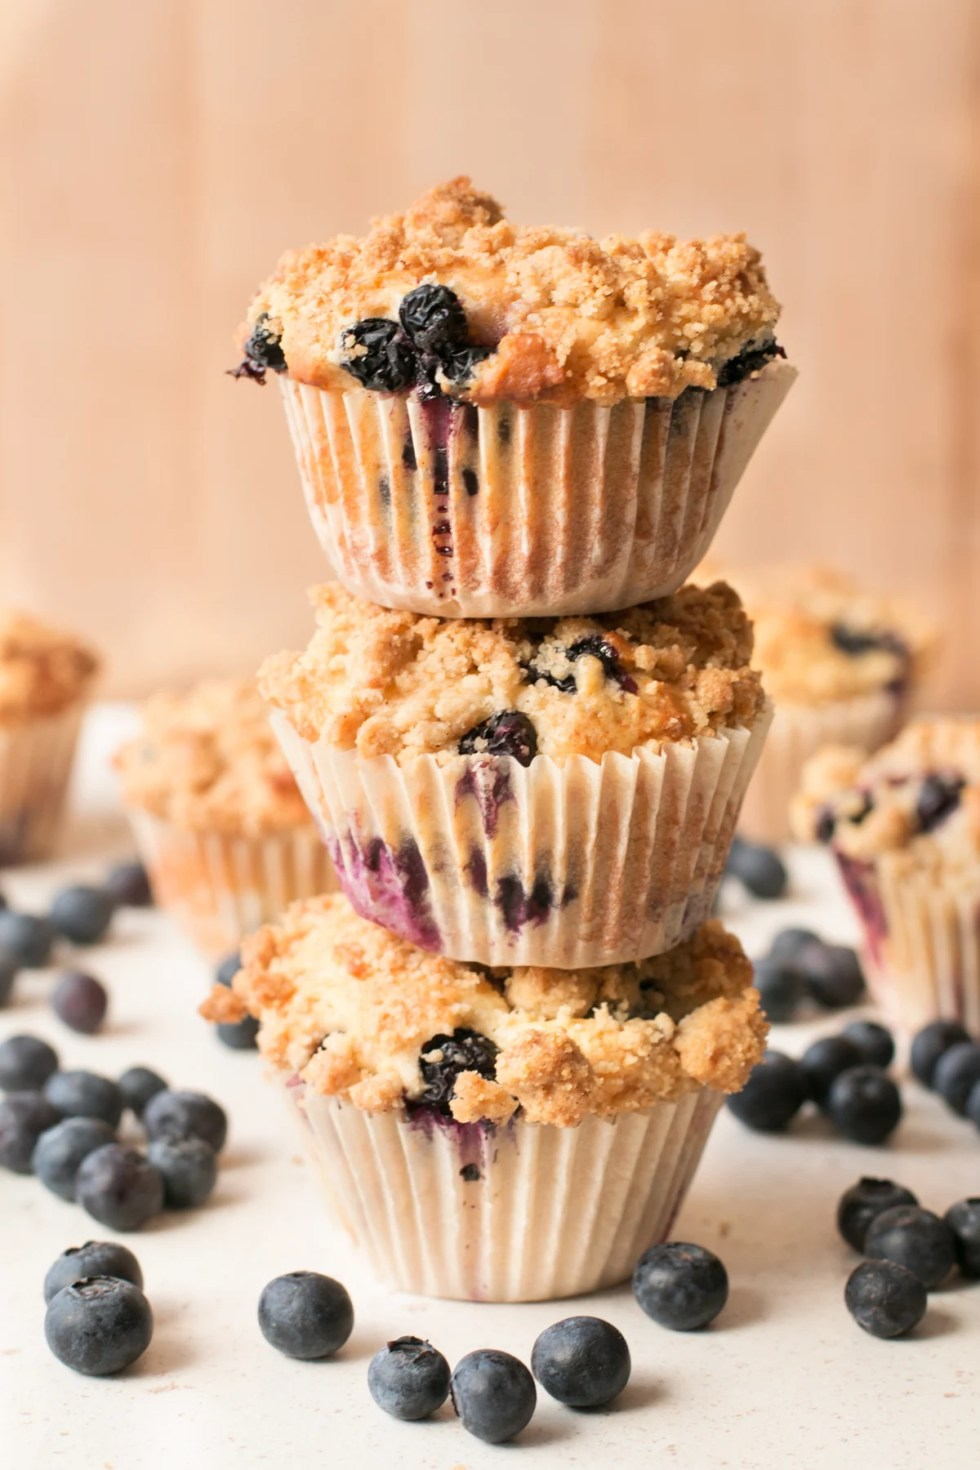 A stack of blueberry crumb muffins sitting on a white surface and surrounded by loose blueberries